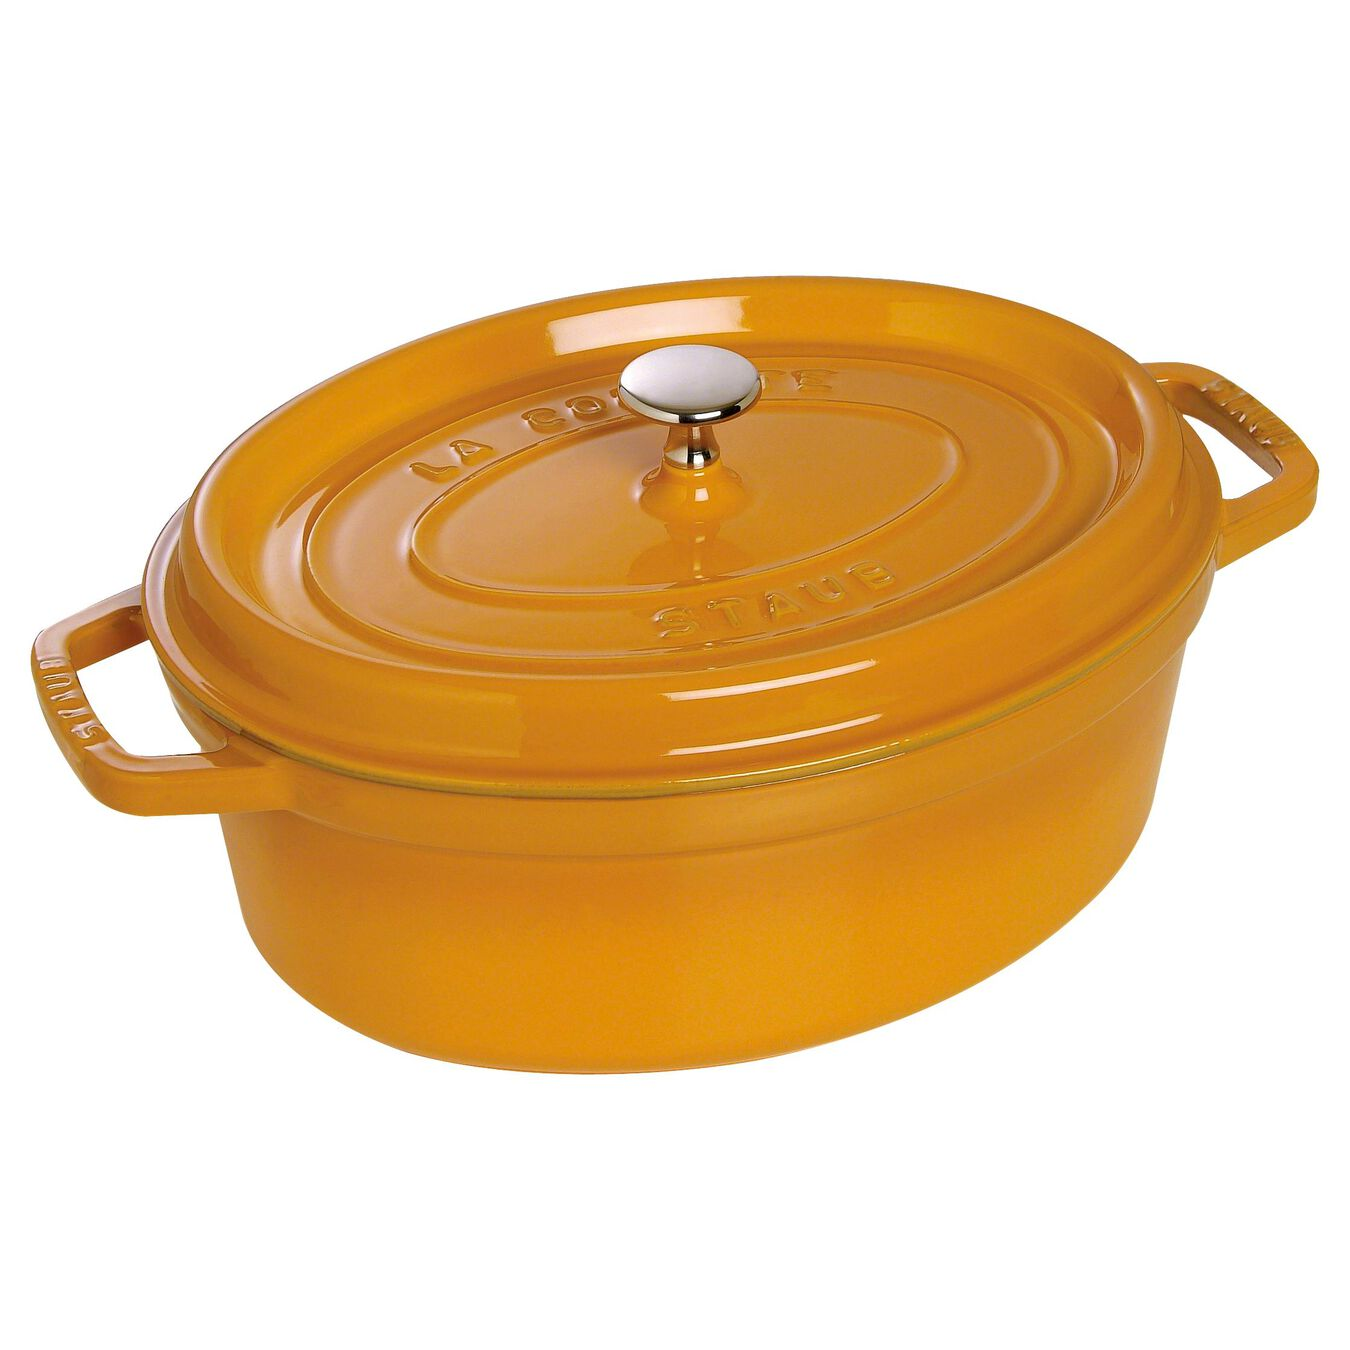 Cocotte 23 cm, Ovale, Moutarde, Fonte,,large 1